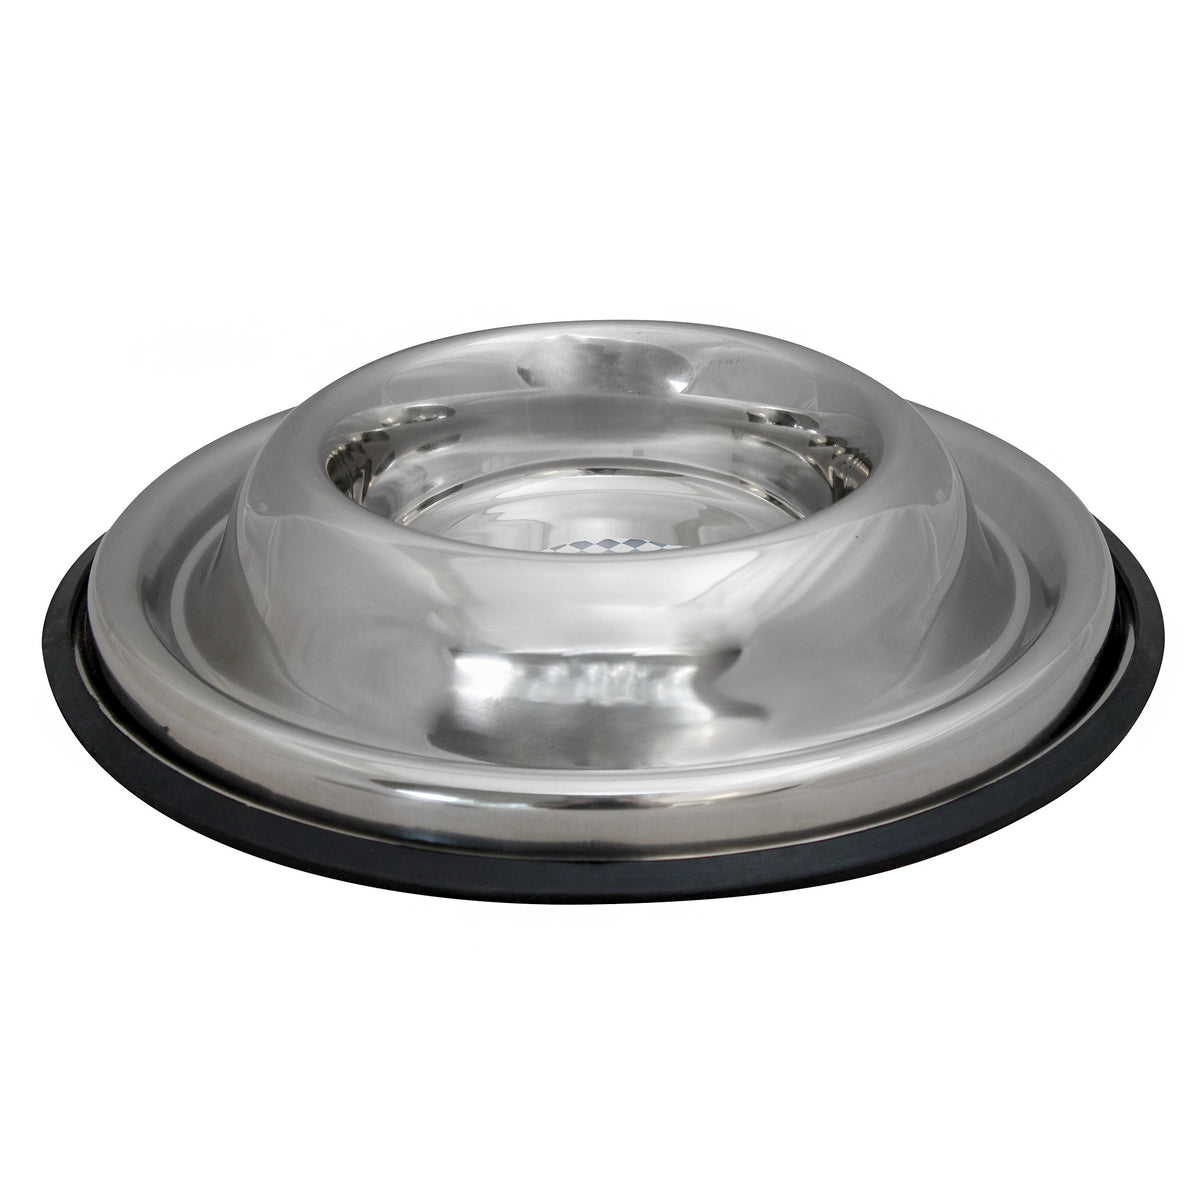 Ant Moat Stainless Steel Pet Bowl